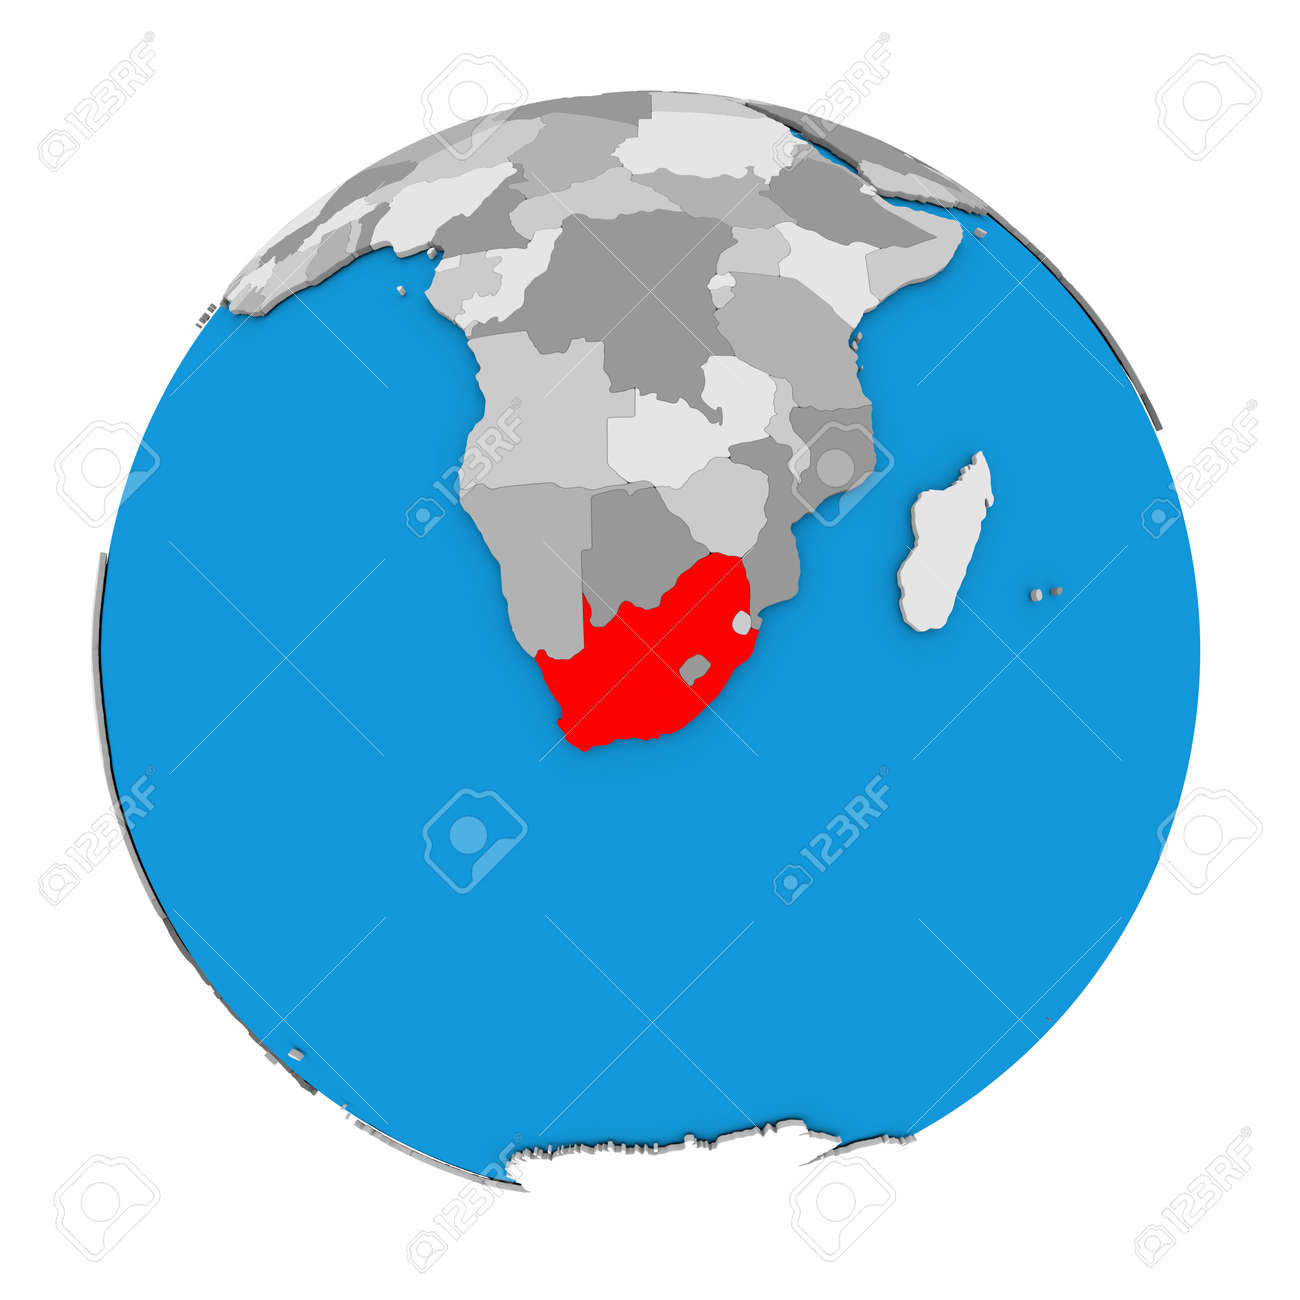 Map Of South Africa Highlighted In Red On Globe 3D Illustration